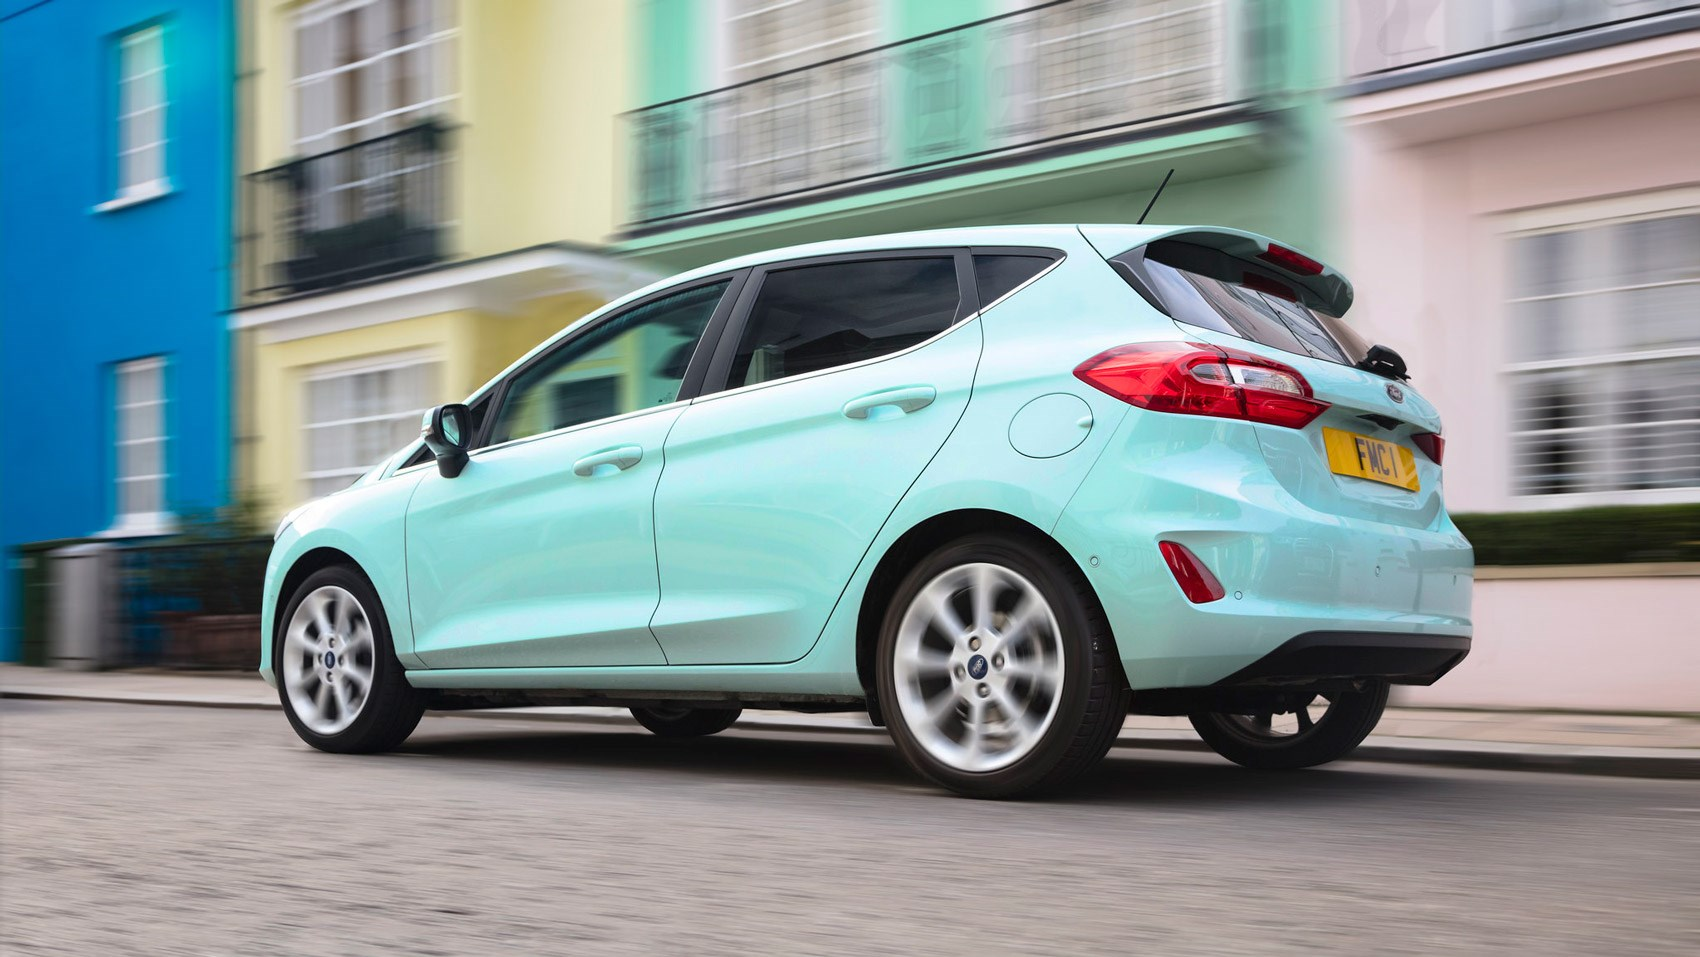 ford fiesta 114 - Ford Fiesta (2020) evaluation: supermini supremo